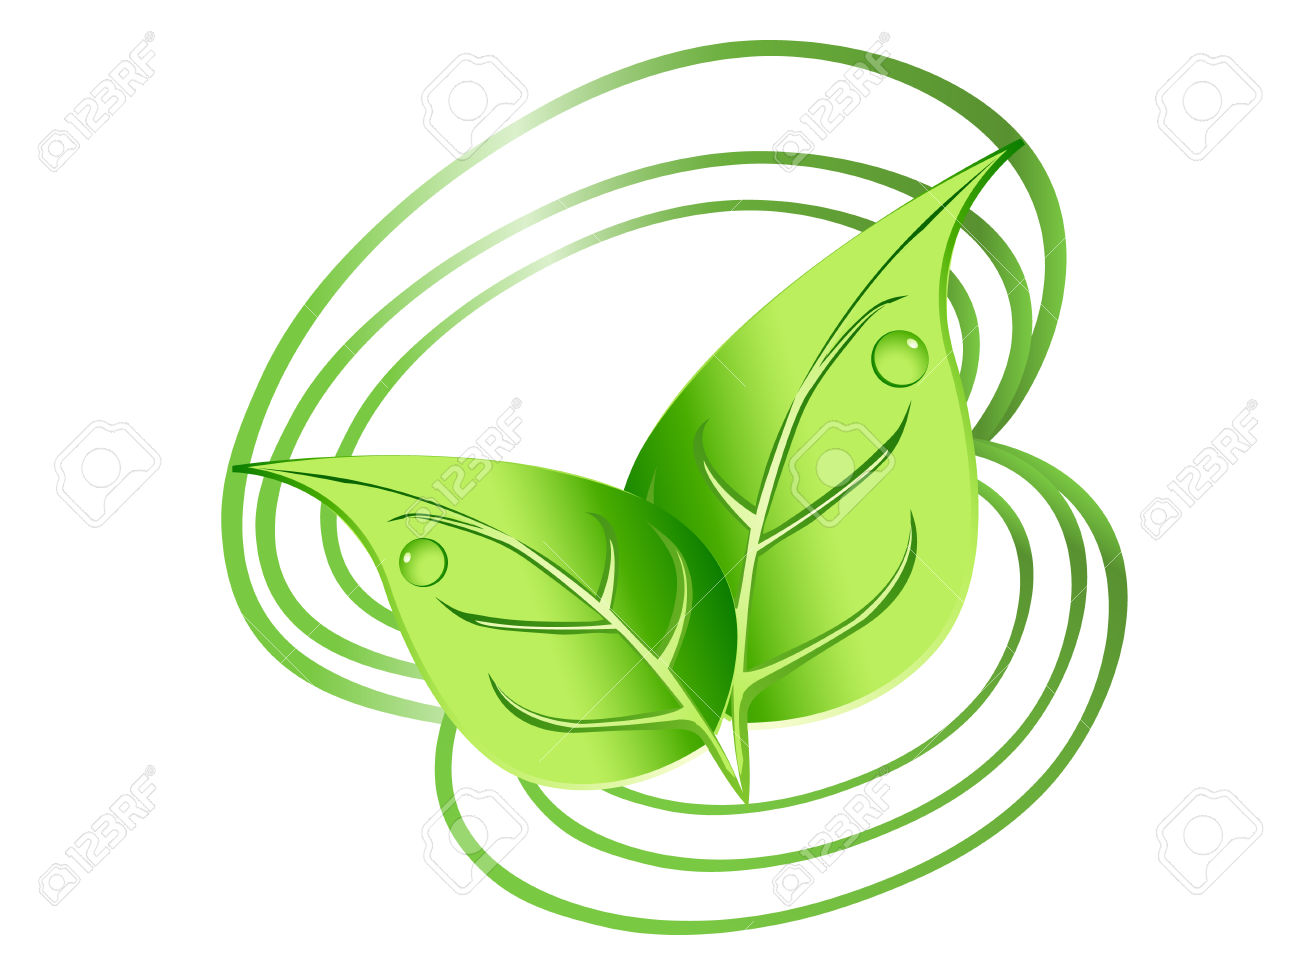 Green Leaves Design With Drops And Spirals Royalty Free Cliparts.